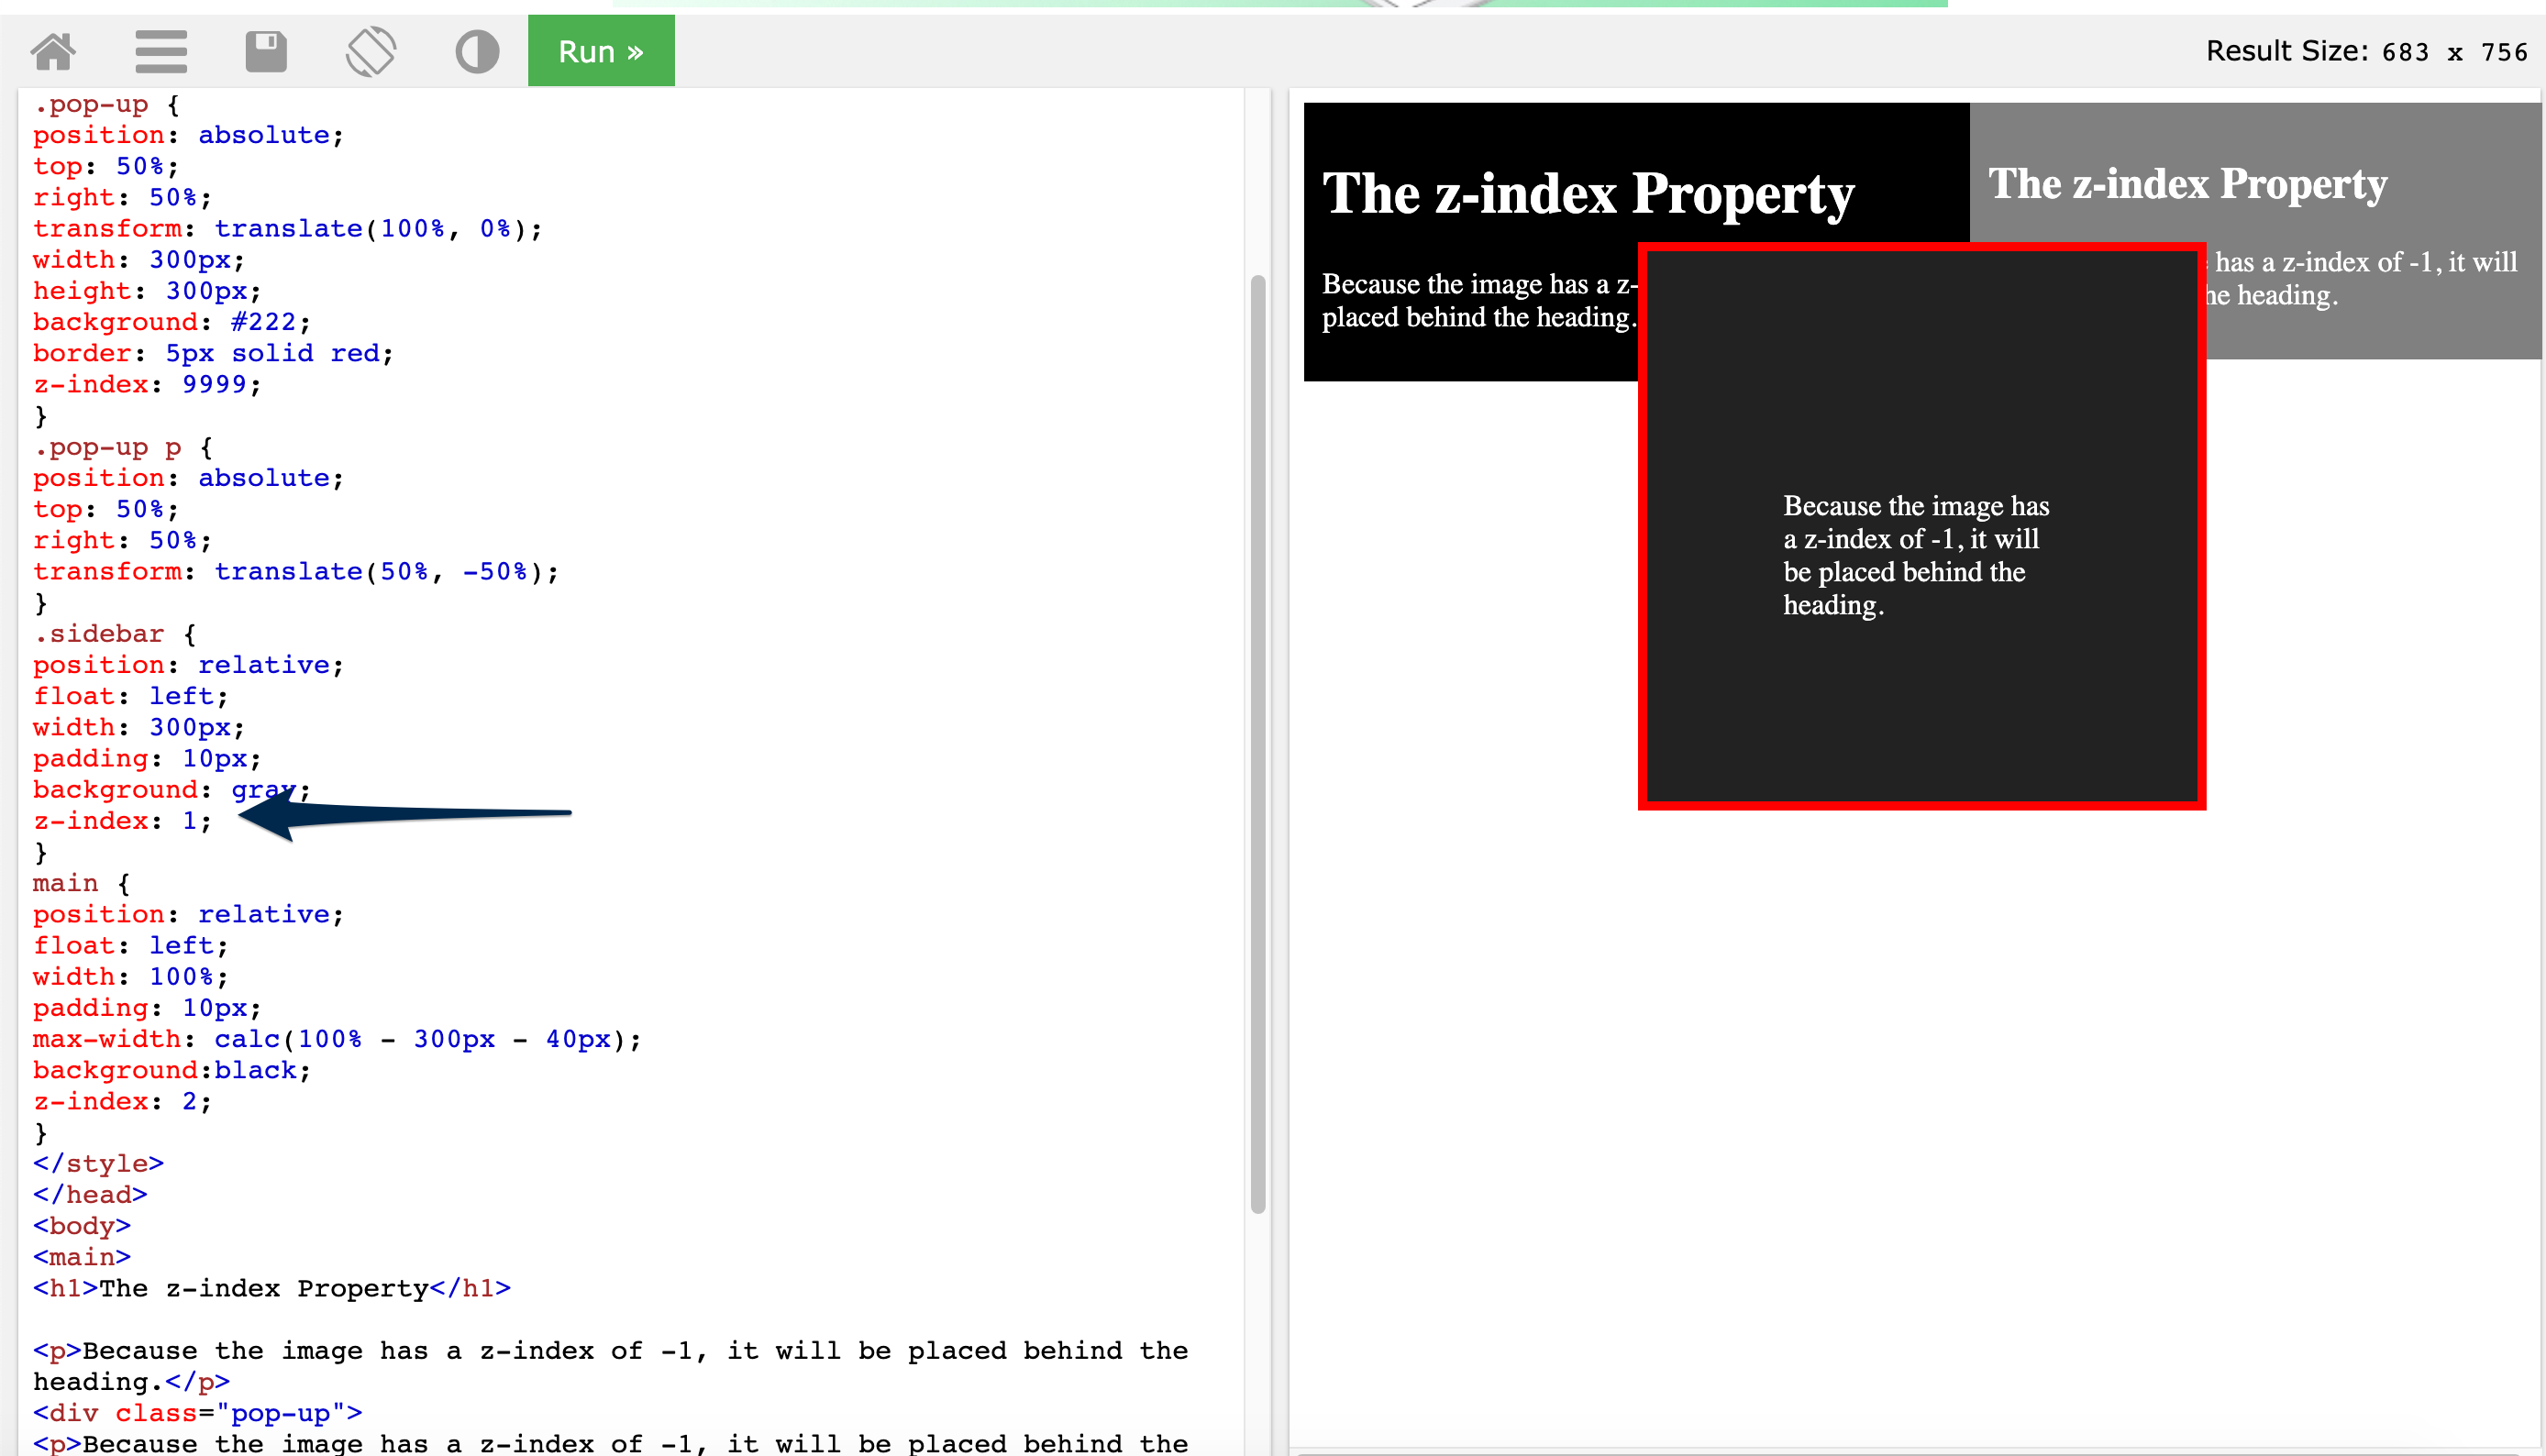 On the right the pop up is on top of the other elements, An arrow is pointing to the CSS document and style for the sidebar which has a z-index of 1